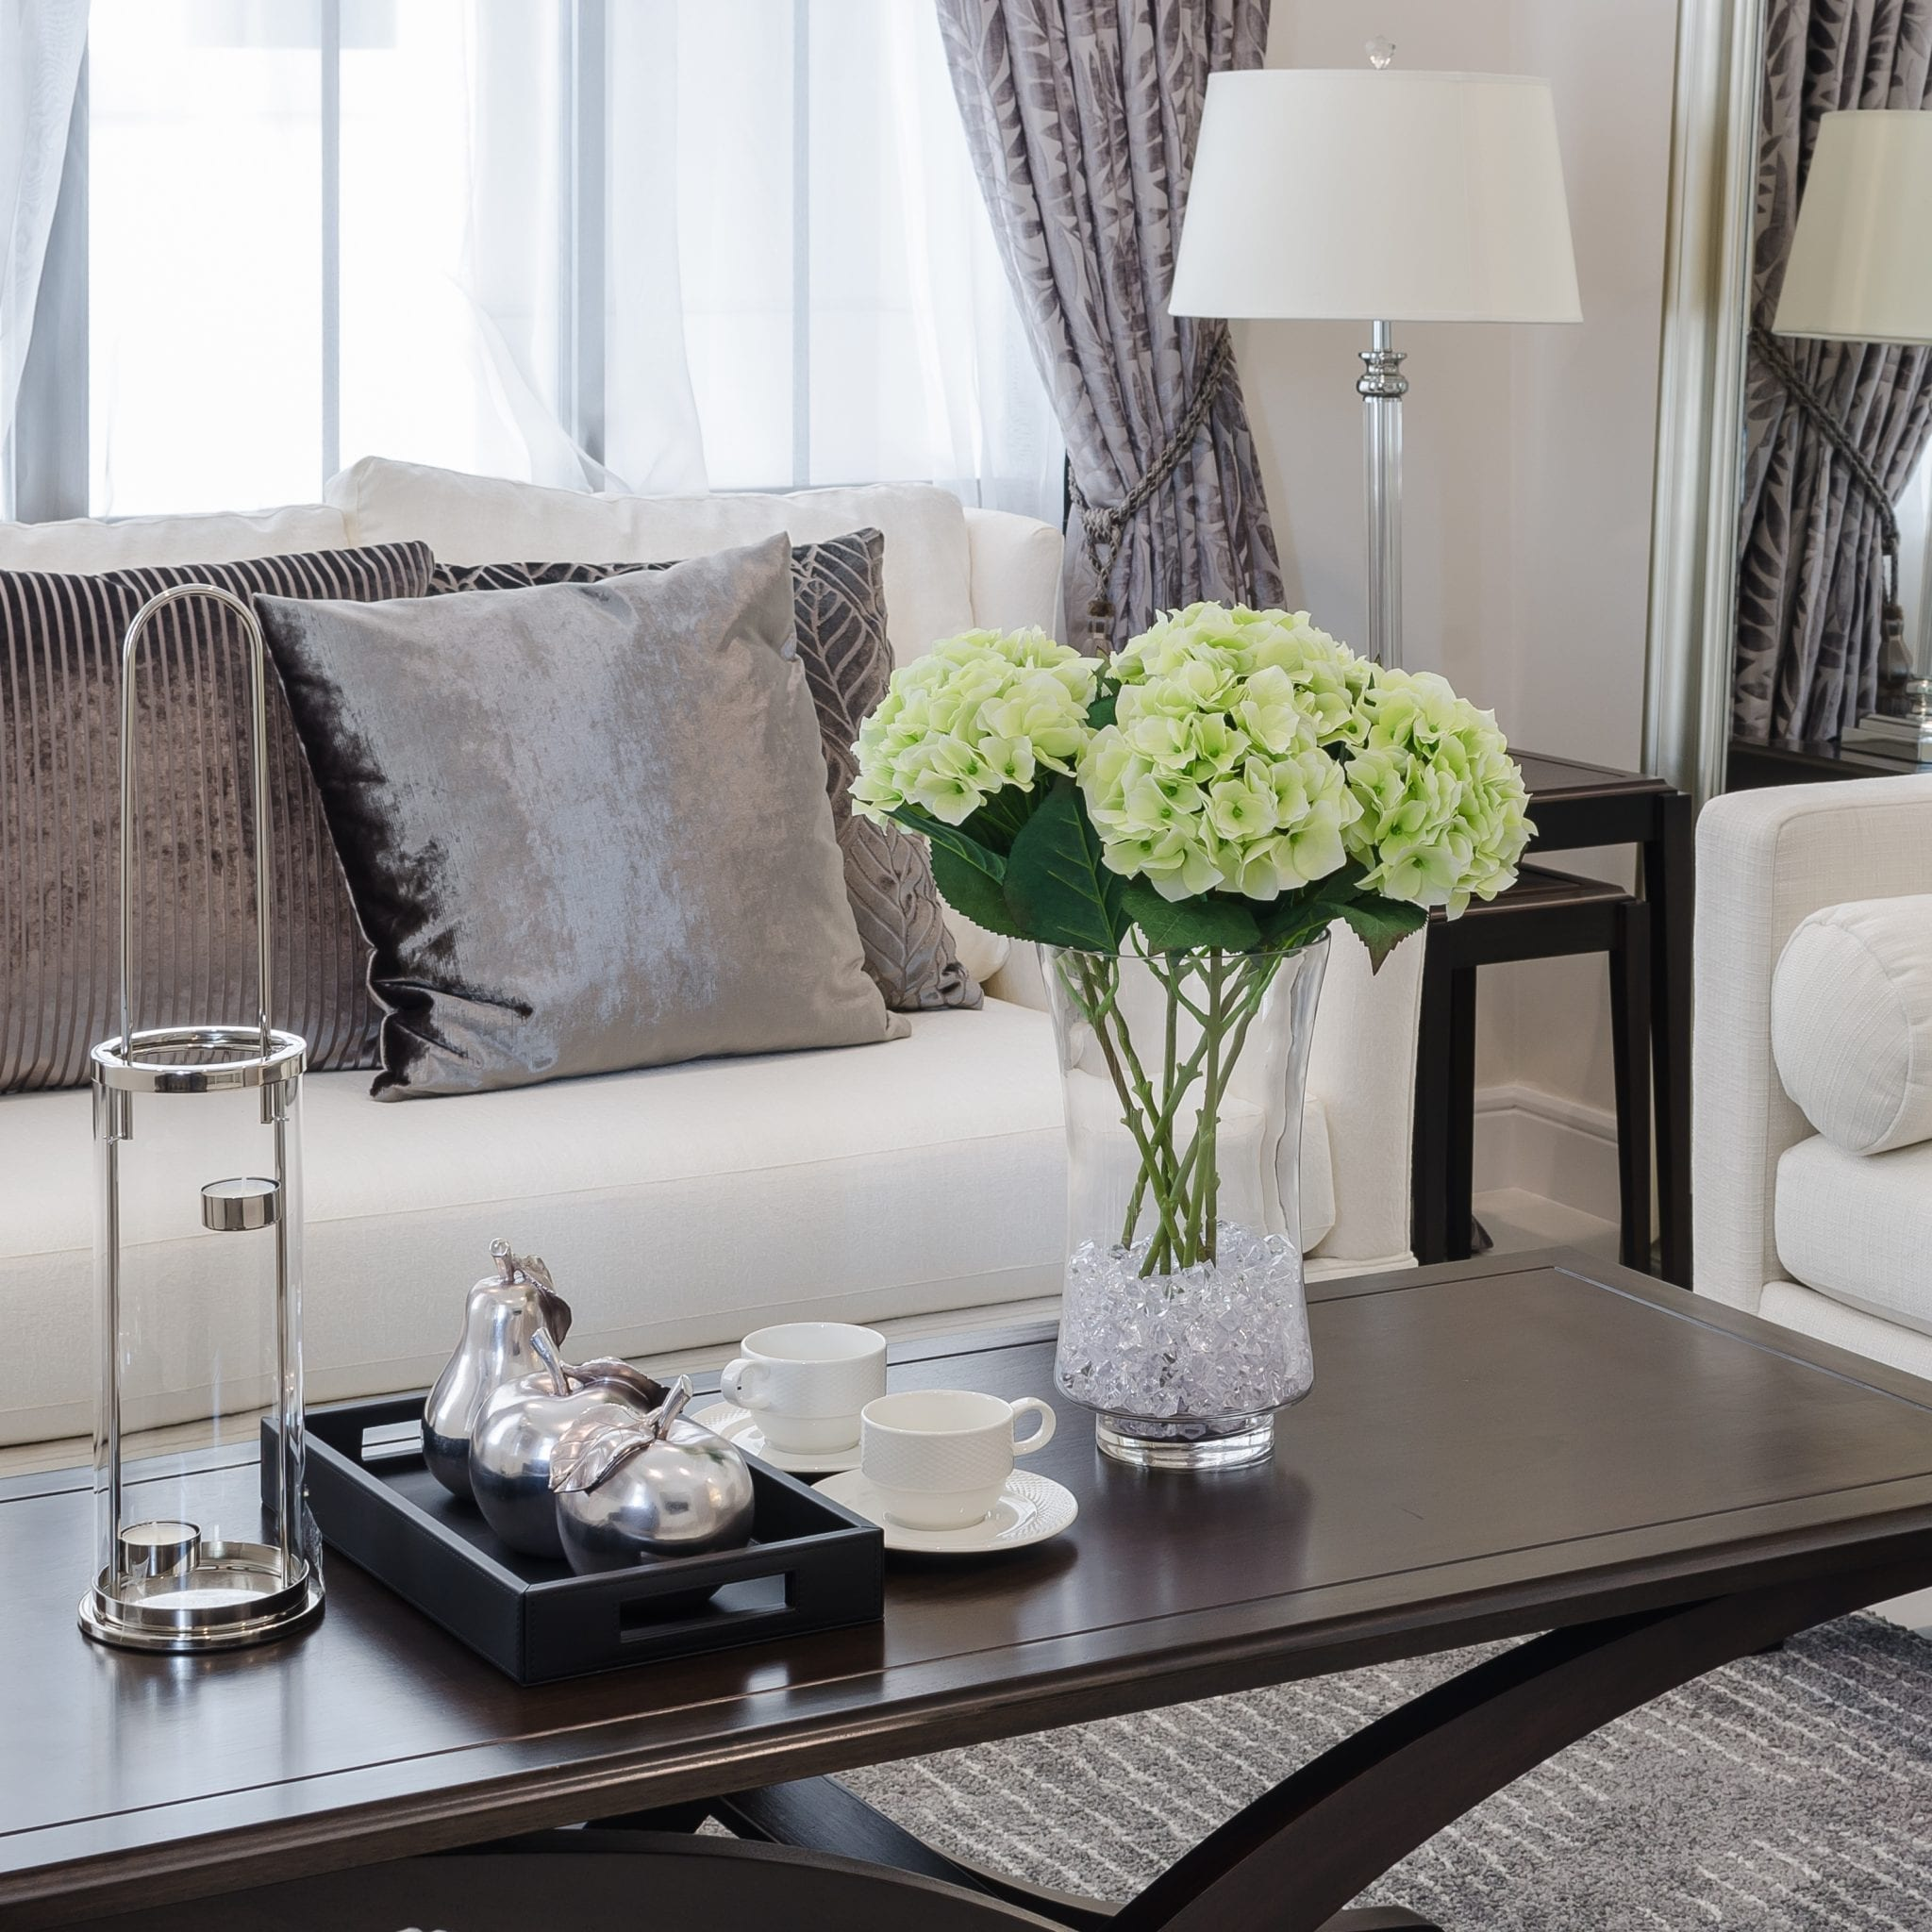 Home Luxury Items how to clean luxury items – keep it up